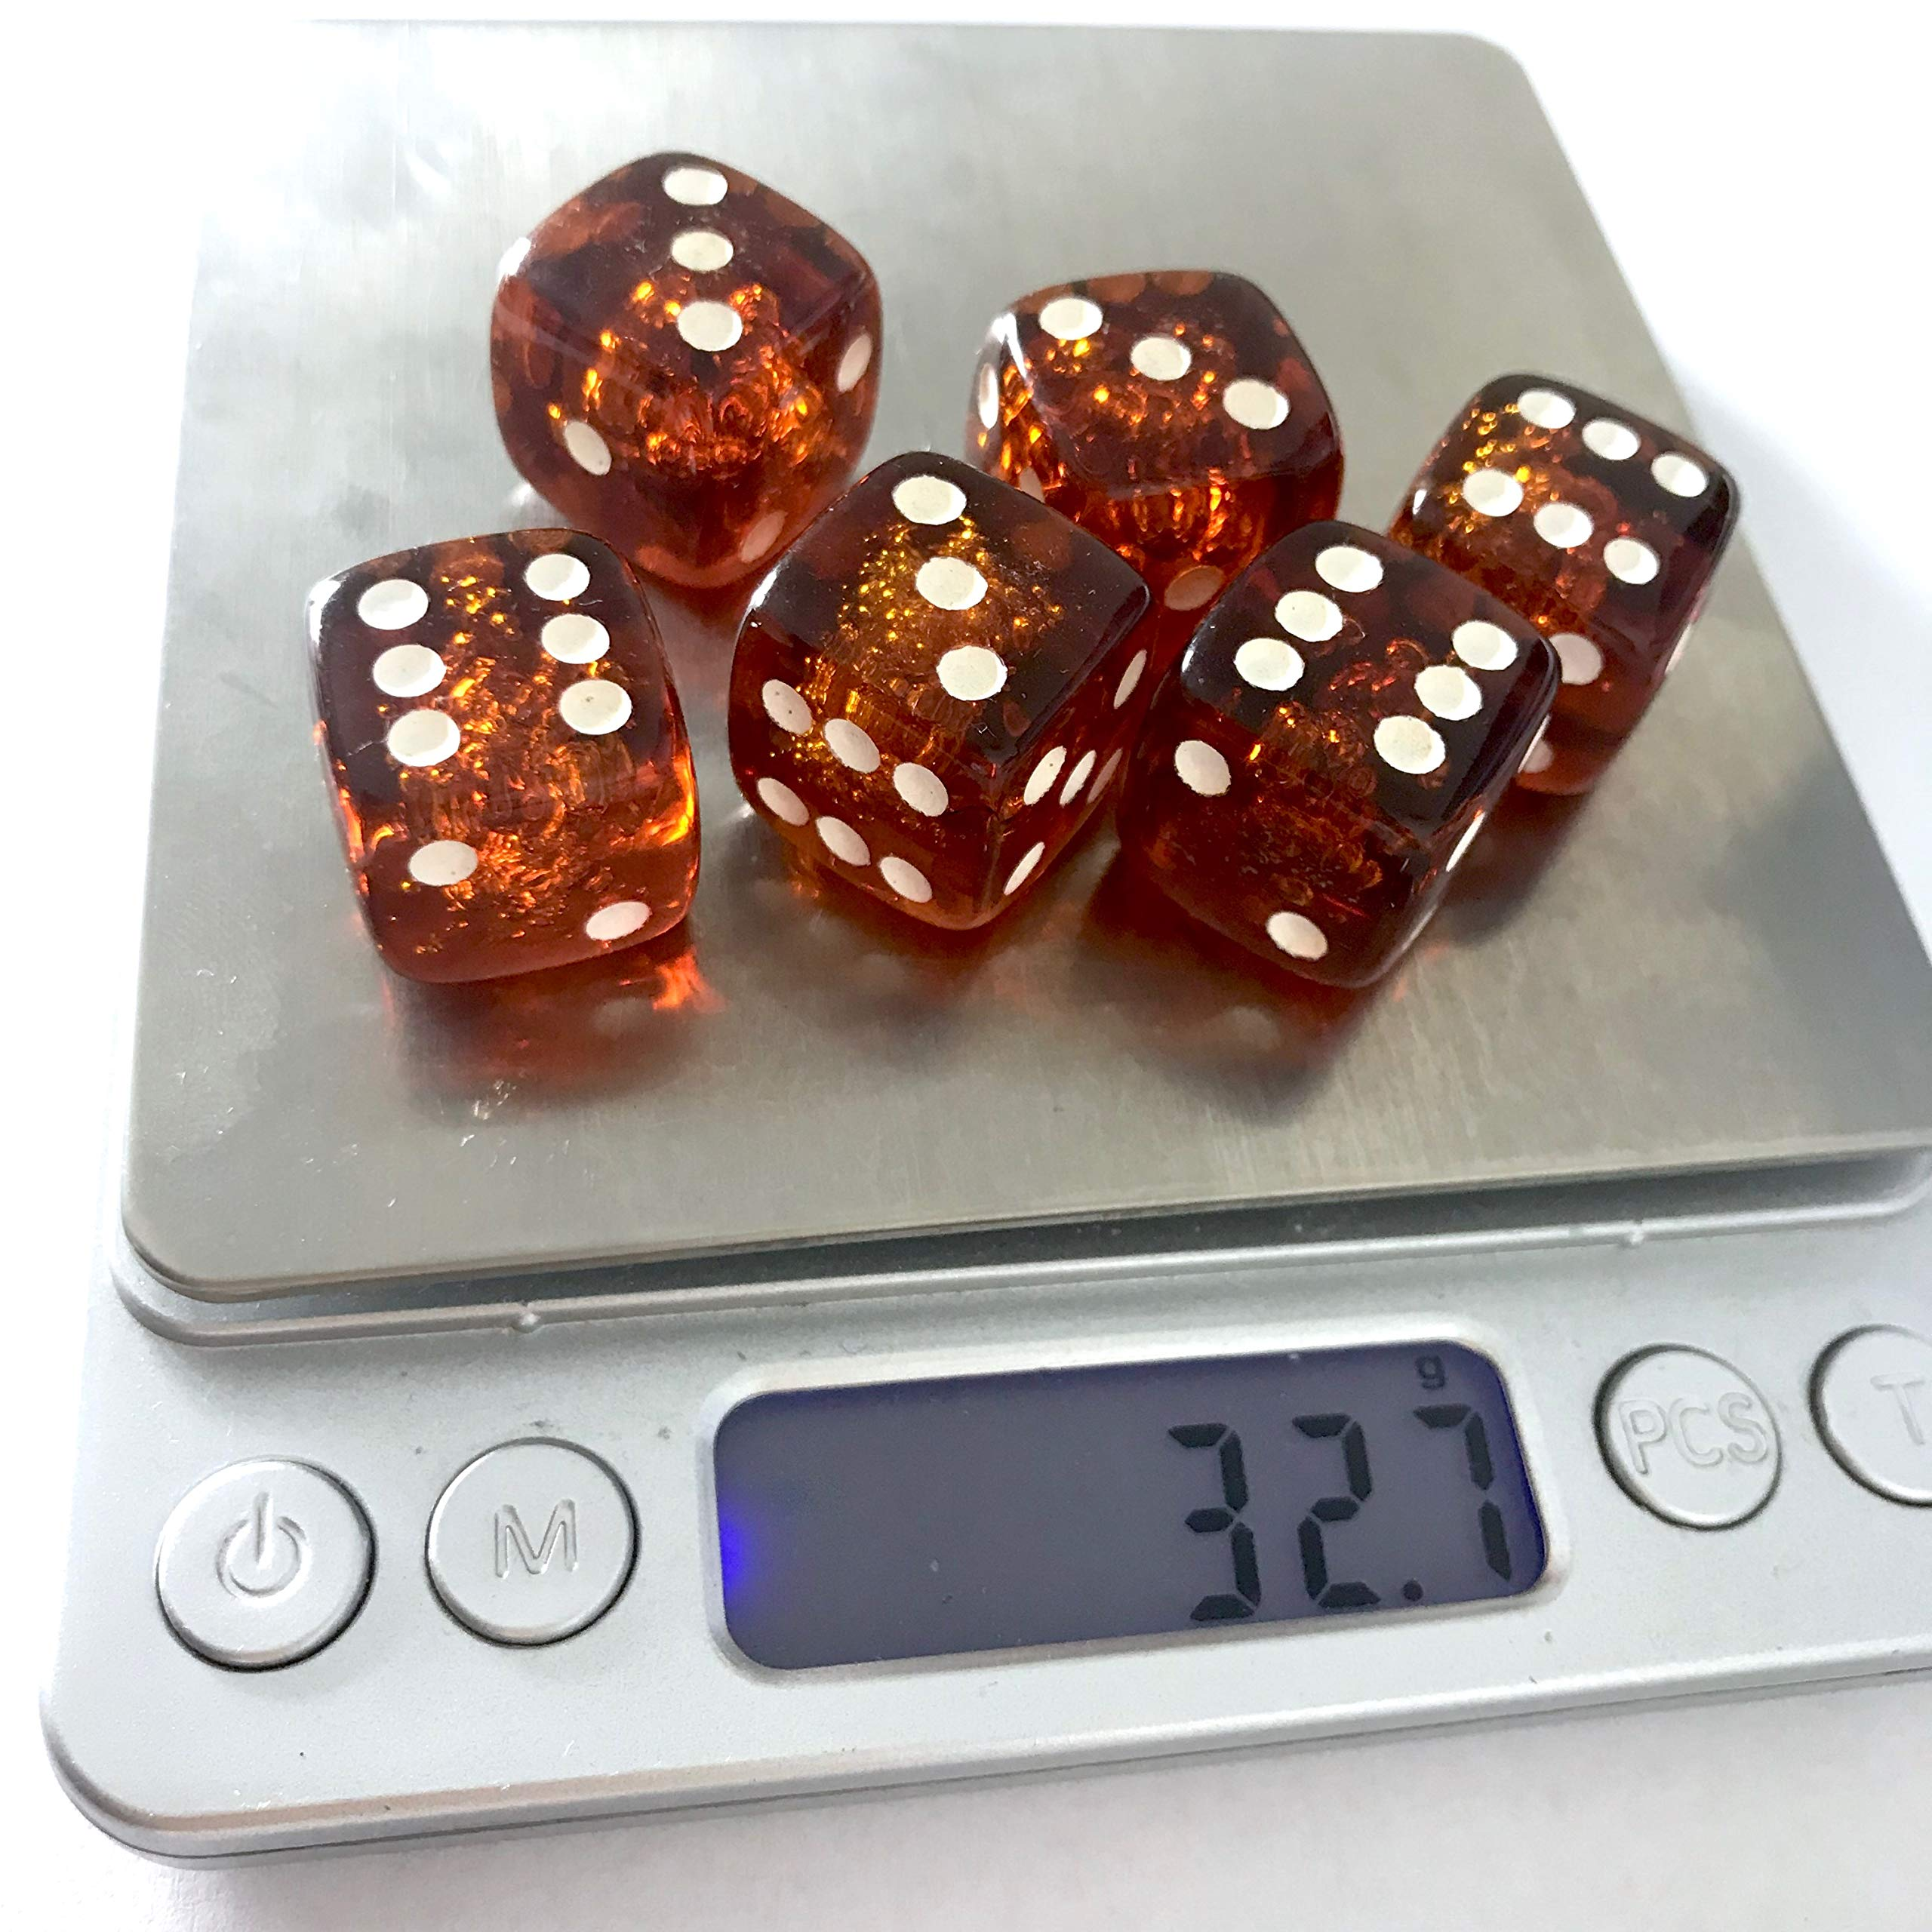 x6 Proper size Amber Dice set for Board games and Gambling by Generic (Image #8)